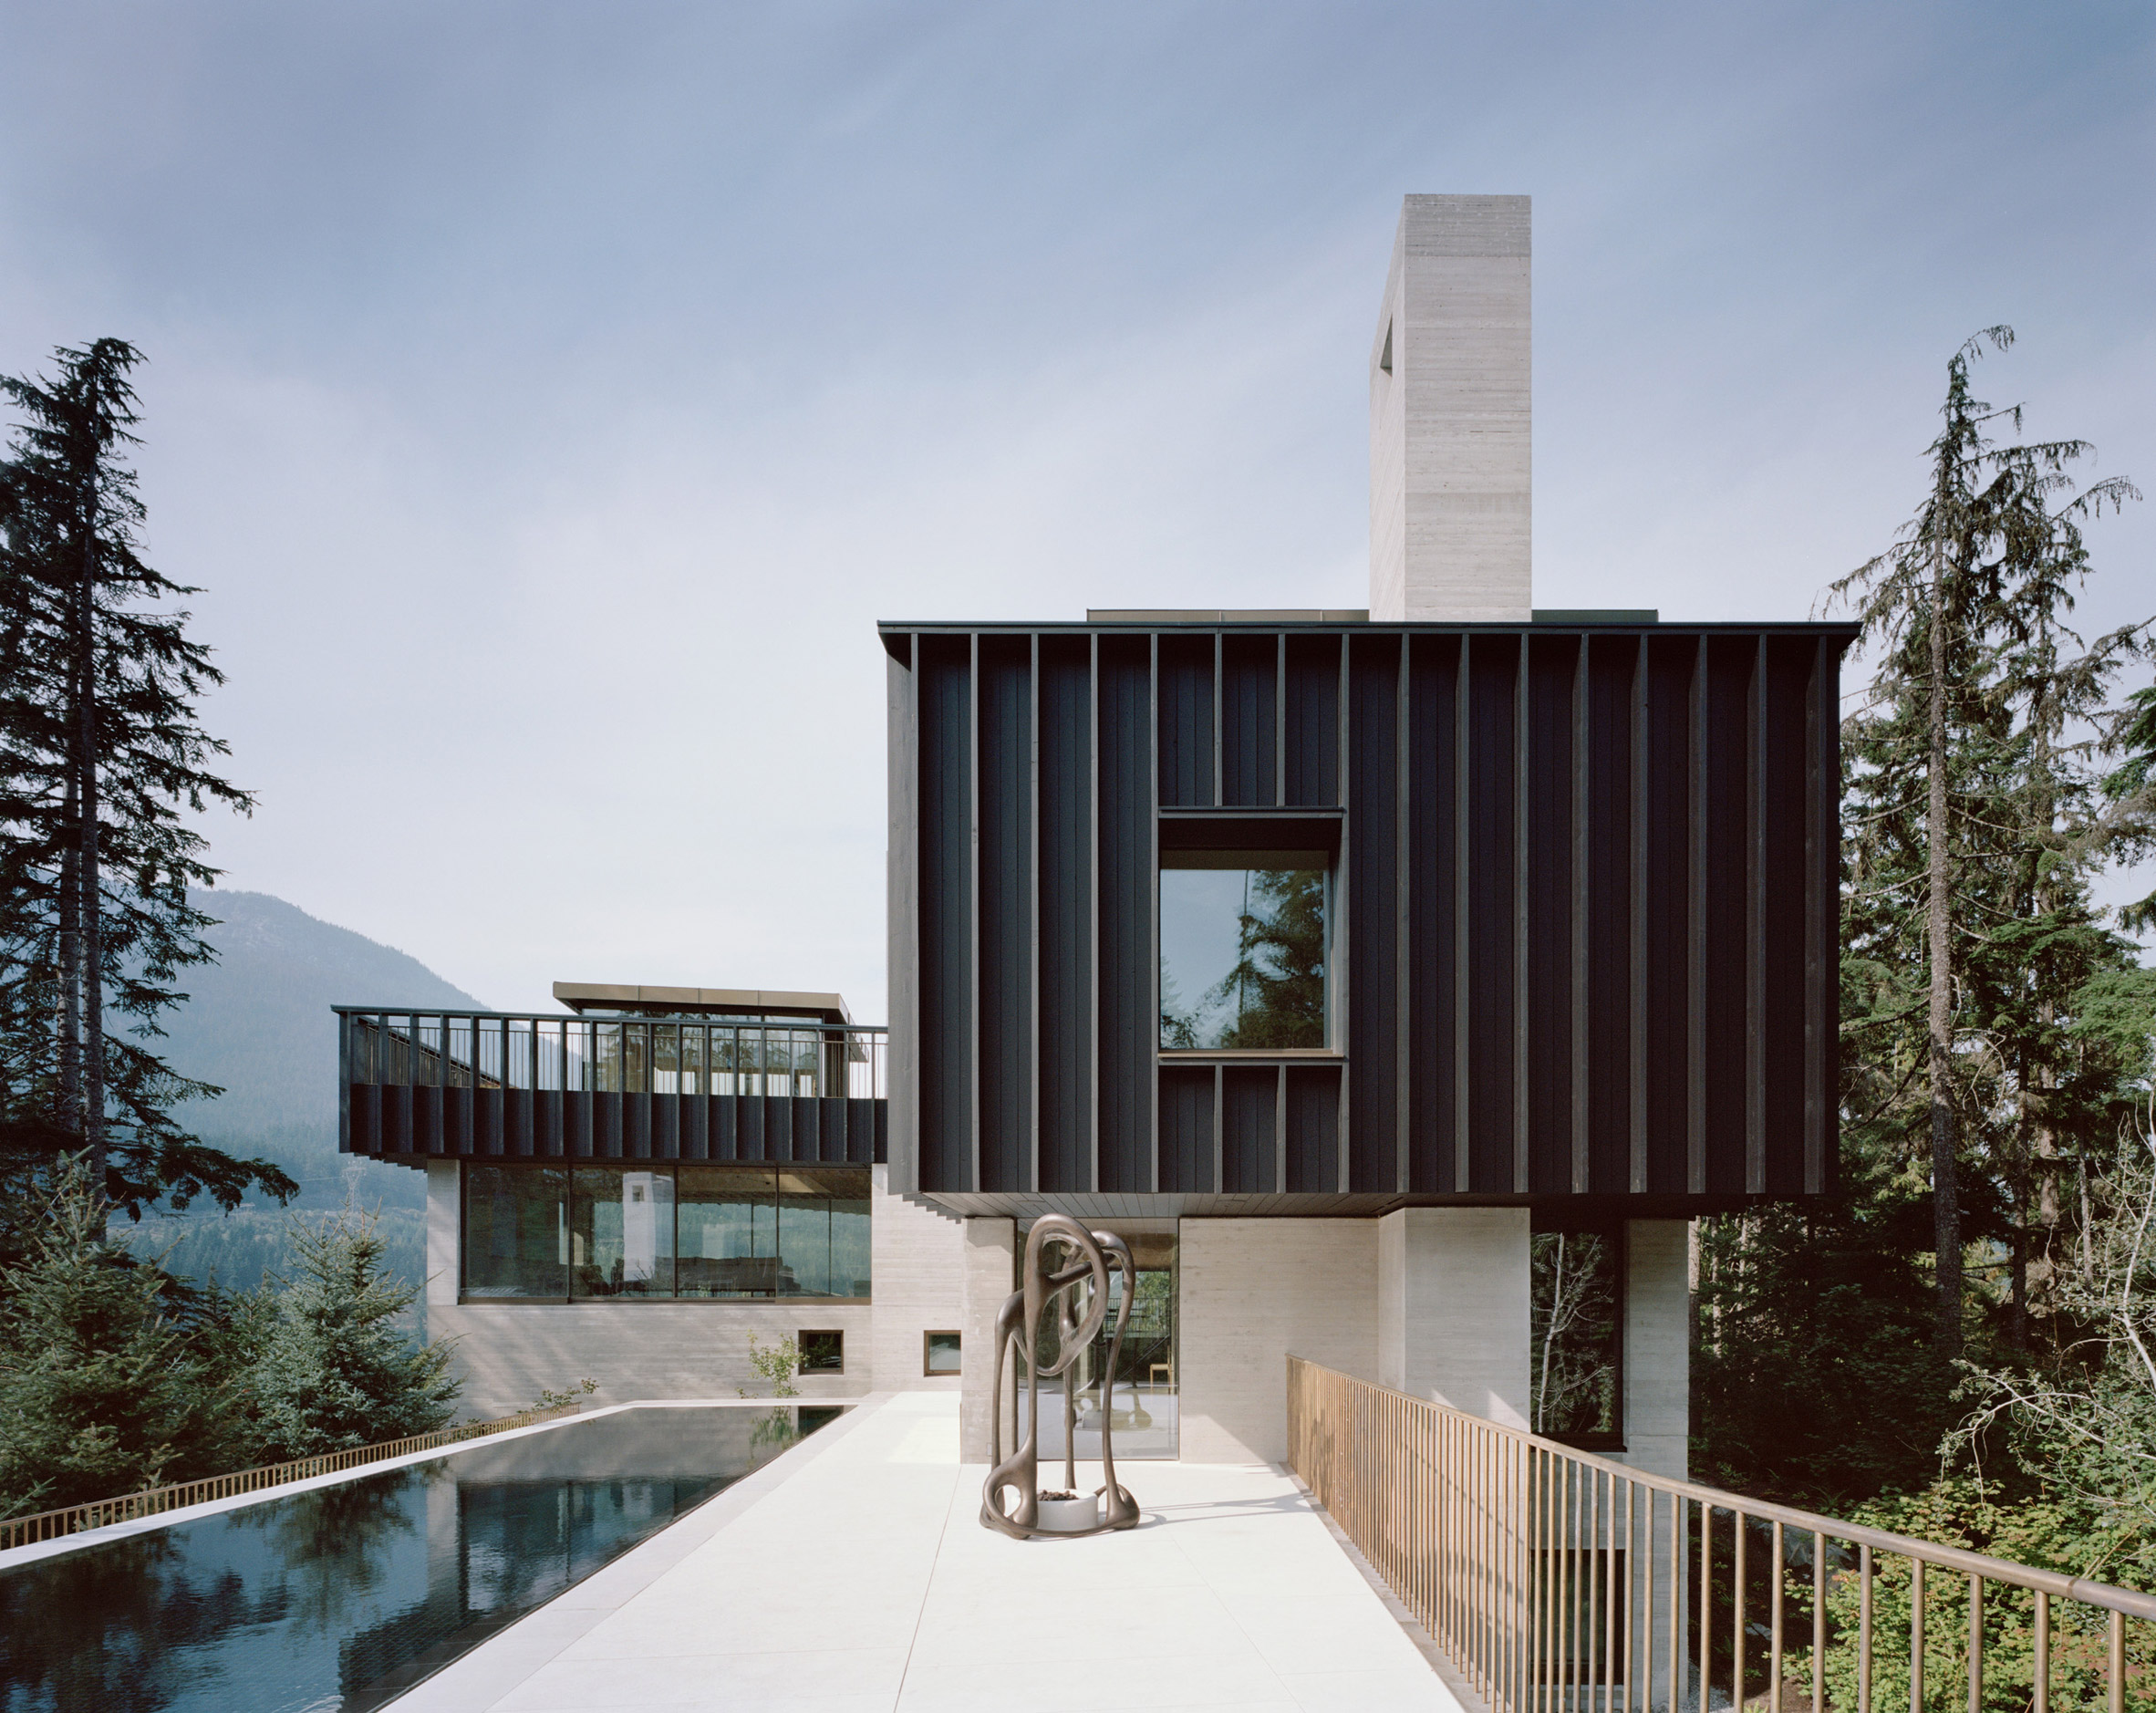 Terrace and swimming pool, The Rock house in Whistler by Gort Scott